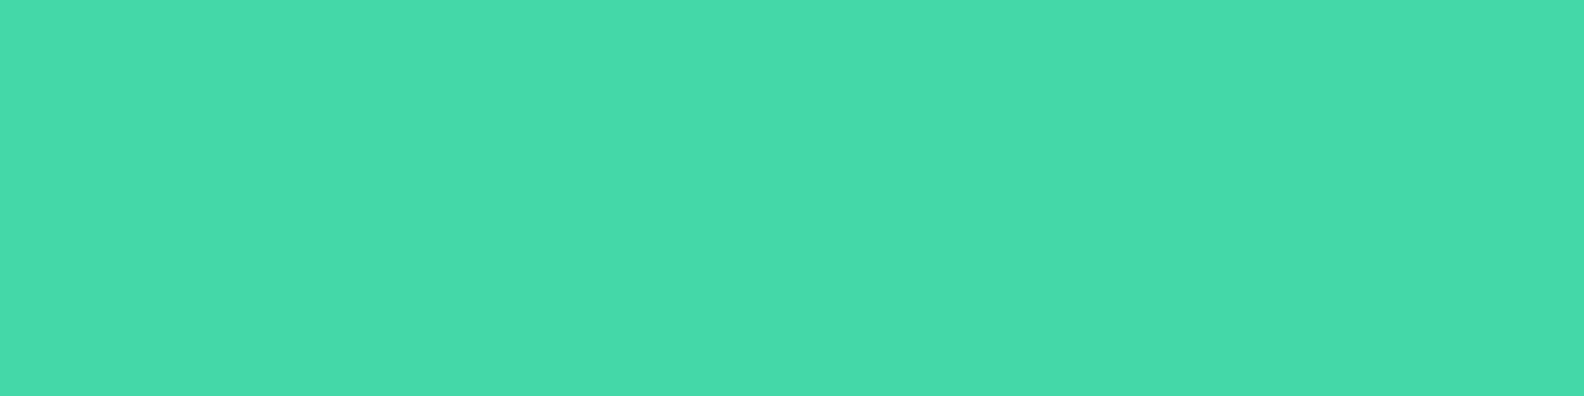 1584x396 Eucalyptus Solid Color Background